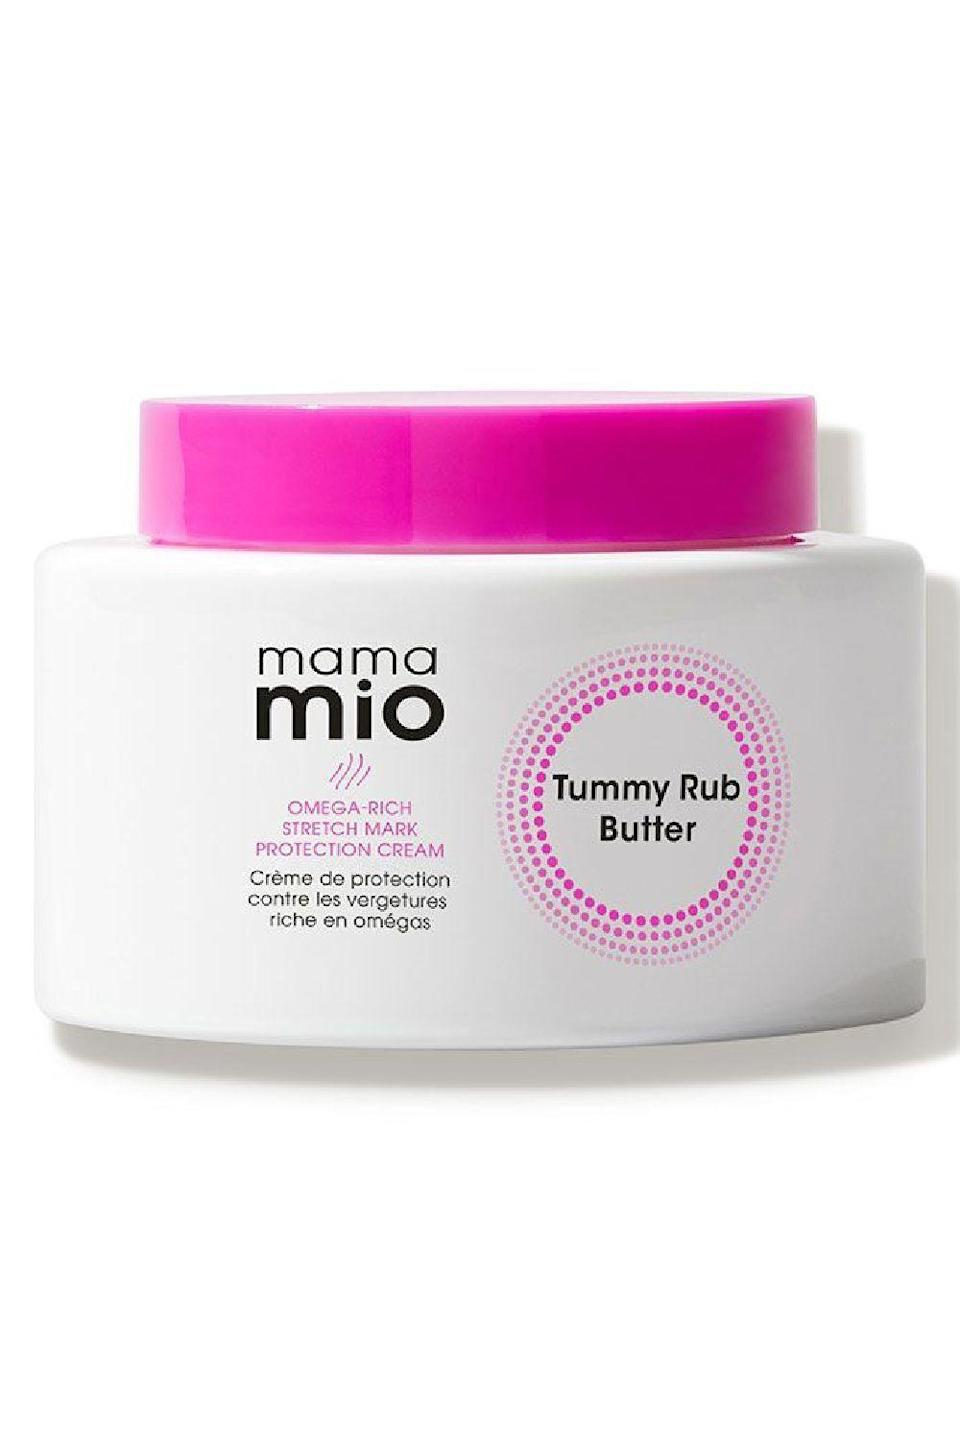 """<p><strong>Mama Mio</strong></p><p>amazon.com</p><p><strong>$34.00</strong></p><p><a href=""""https://www.amazon.com/Mama-Mio-Bergamot-mandarin-patchouli/dp/B088CGG51B/?tag=syn-yahoo-20&ascsubtag=%5Bartid%7C10049.g.23323942%5Bsrc%7Cyahoo-us"""" rel=""""nofollow noopener"""" target=""""_blank"""" data-ylk=""""slk:Shop Now"""" class=""""link rapid-noclick-resp"""">Shop Now</a></p><p>This stretch mark cream is specifically created for the belly area, but you can <strong>use it anywhere you might need to soothe itchiness from growing, stretching skin</strong>. This blend of oils (coconut, almond, olive, and sweet almond) with aloe vera, shea butter, vitamin E, and dimethicone will leave your stretchies feeling smooth, soft, and super-moisturized. Head's up: this one has a powerful scent to it, so if you're sensitive to smells and prefer <a href=""""https://www.cosmopolitan.com/style-beauty/beauty/a34024982/fragrance-free-skincare-routine-essay/"""" rel=""""nofollow noopener"""" target=""""_blank"""" data-ylk=""""slk:fragrance-free skincare products"""" class=""""link rapid-noclick-resp"""">fragrance-free skincare products</a>, try the version of <a href=""""https://go.redirectingat.com?id=74968X1596630&url=https%3A%2F%2Fwww.dermstore.com%2Fproduct_The%2BTummy%2BRub%2BButter%2B%2BFragrance%2BFree_75260.htm&sref=https%3A%2F%2Fwww.cosmopolitan.com%2Fstyle-beauty%2Fbeauty%2Fg23323942%2Fbest-stretch-mark-removal-cream%2F"""" rel=""""nofollow noopener"""" target=""""_blank"""" data-ylk=""""slk:this tummy butter without added fragrance"""" class=""""link rapid-noclick-resp"""">this tummy butter without added fragrance</a>.</p>"""